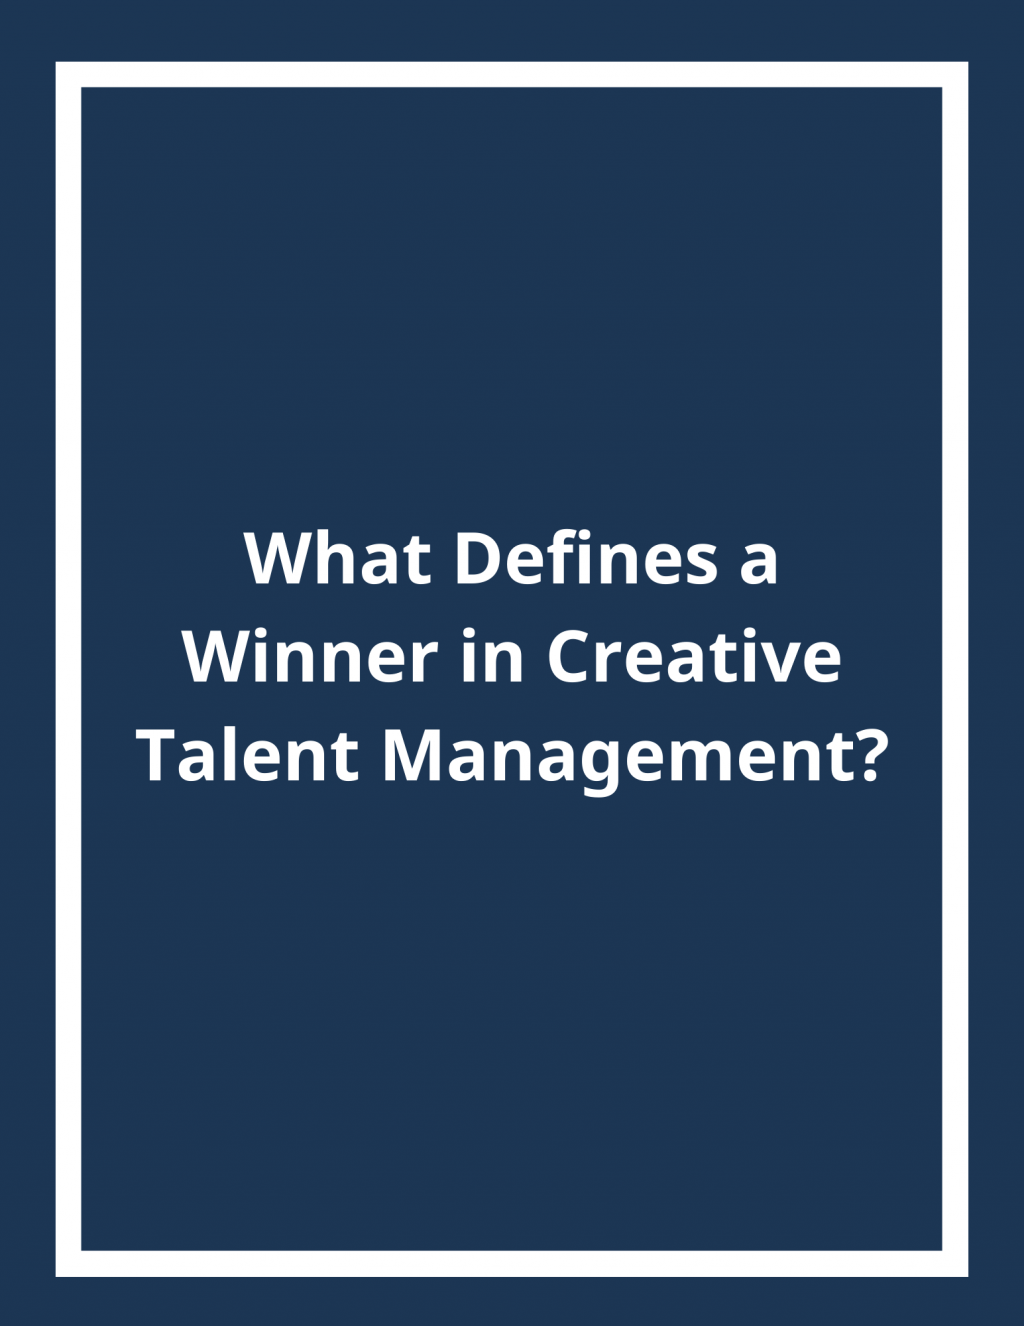 What Defines a Winner in Creative Talent Management